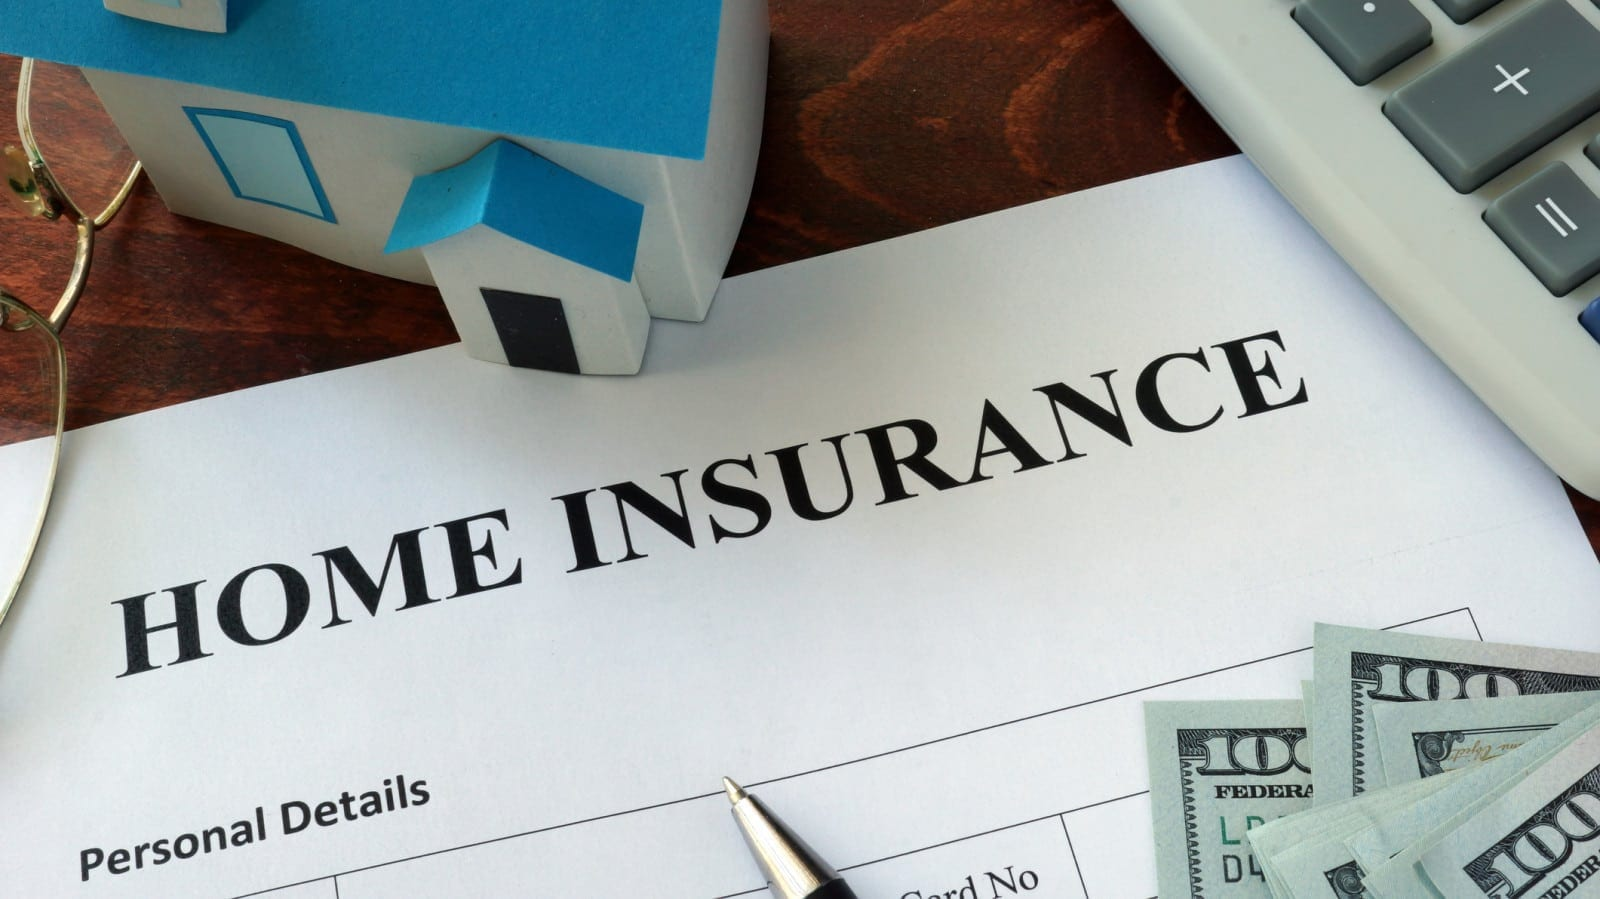 Home Insurance Documentation Stock Photo